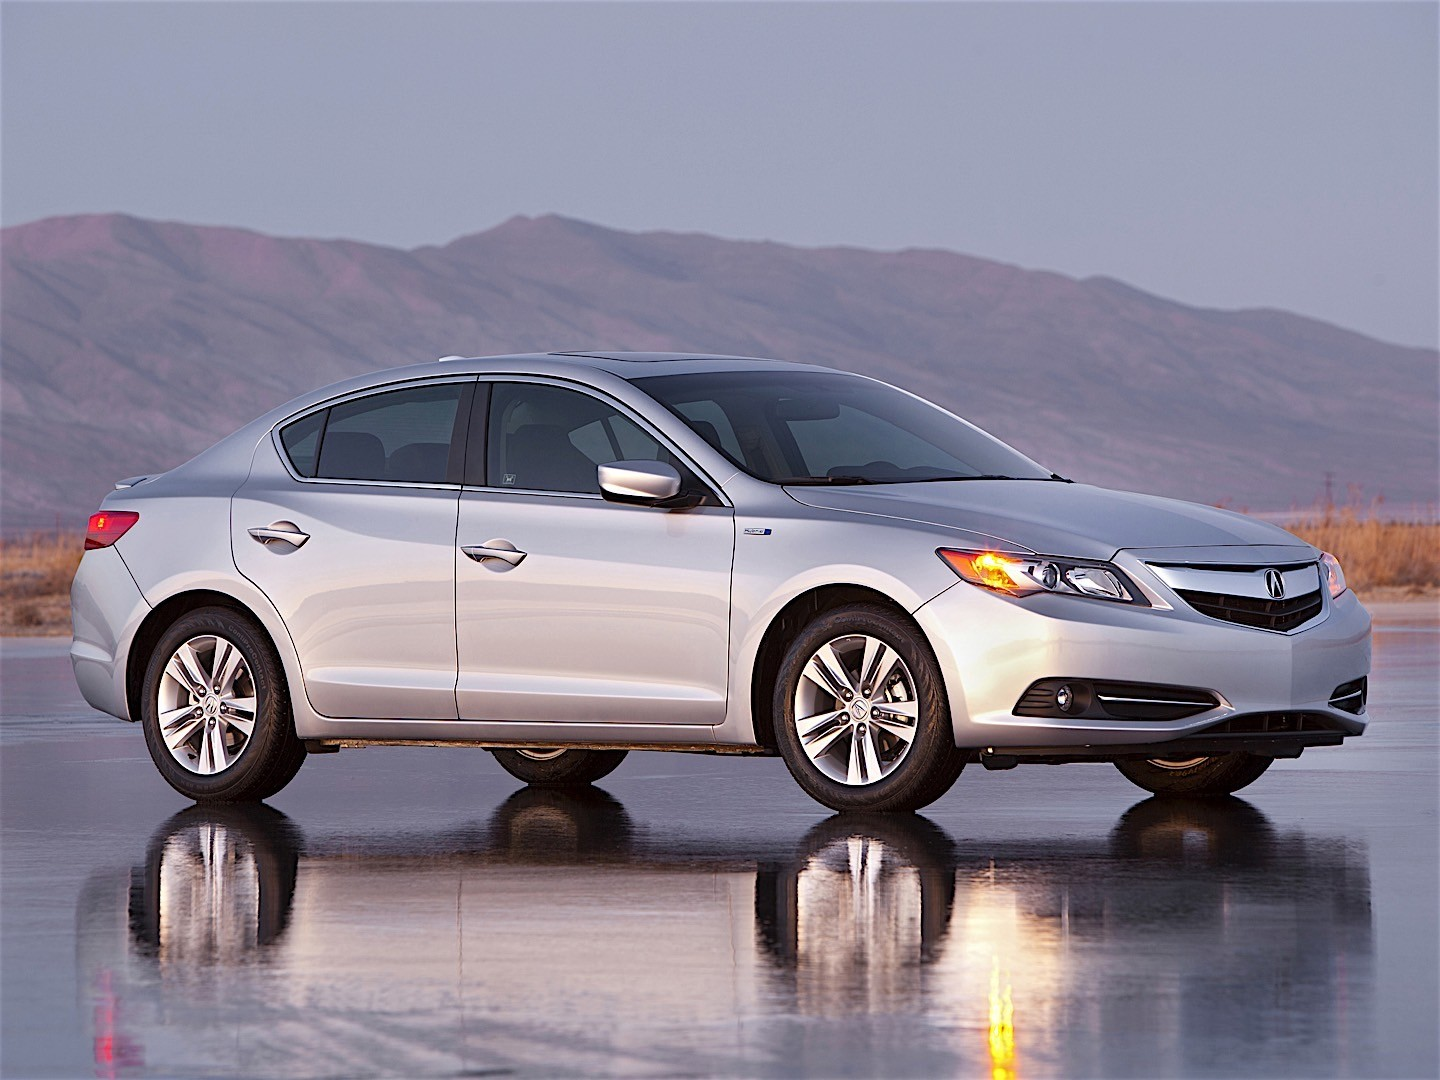 acura ilx specs 2014 2015 2016 autoevolution. Black Bedroom Furniture Sets. Home Design Ideas